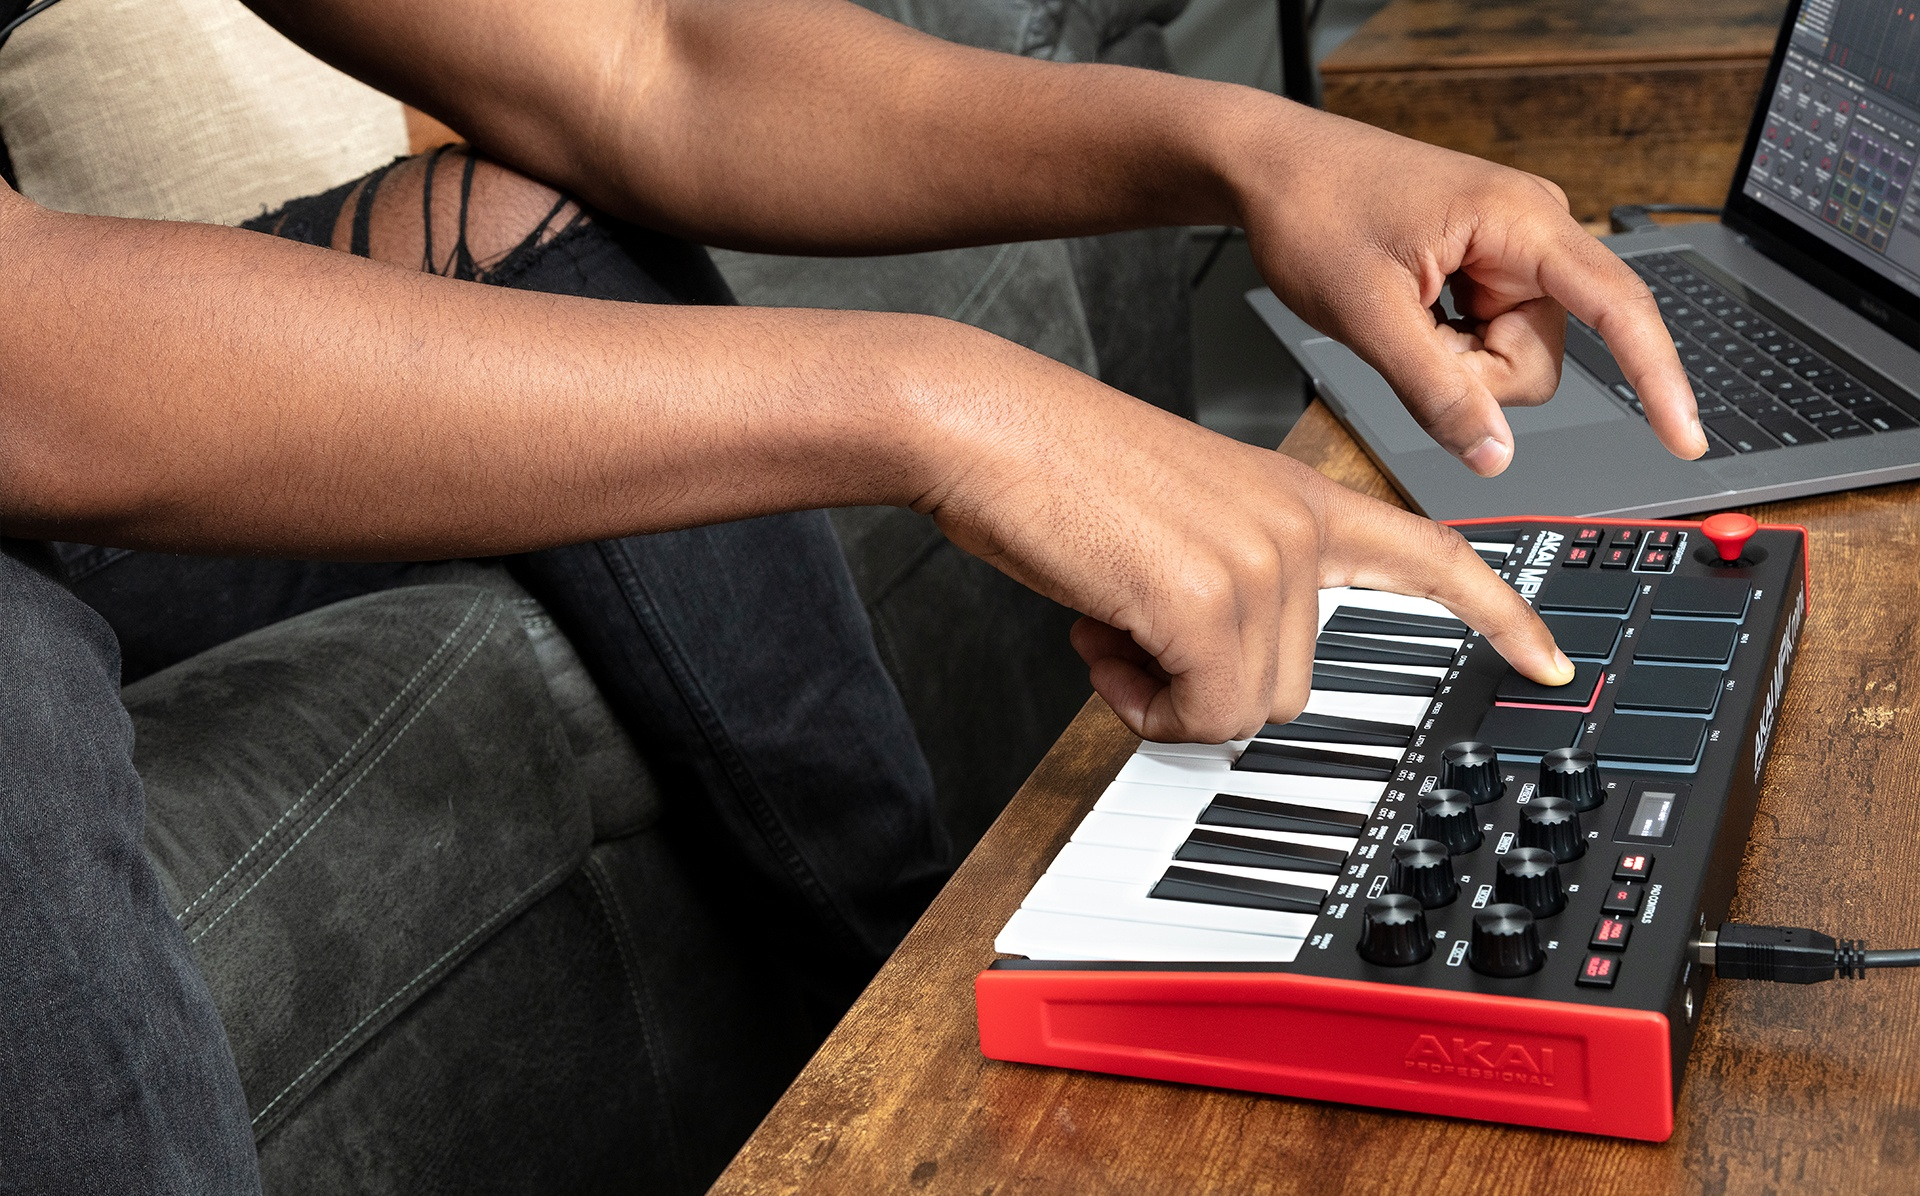 Music producer playing MPC pads on MPK Mini